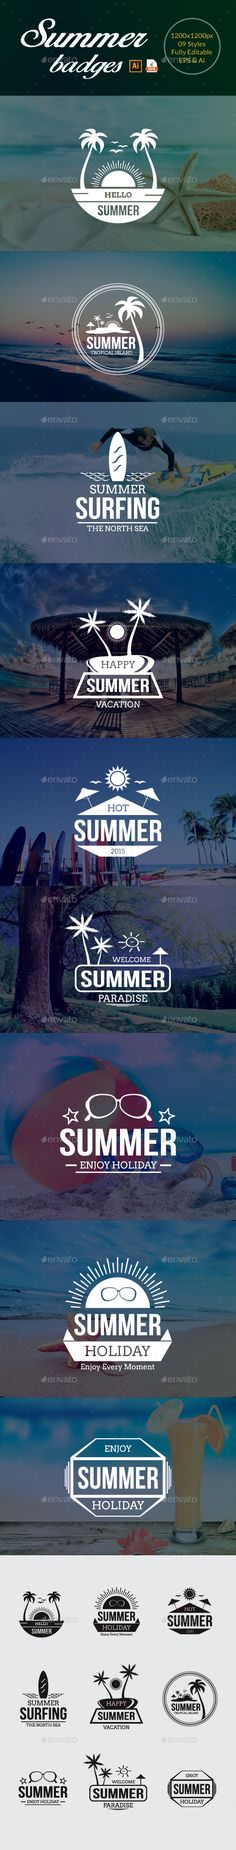 Summer Badges #design Download: http://graphicriver.net/item/summer-badges/11578103?ref=ksioks